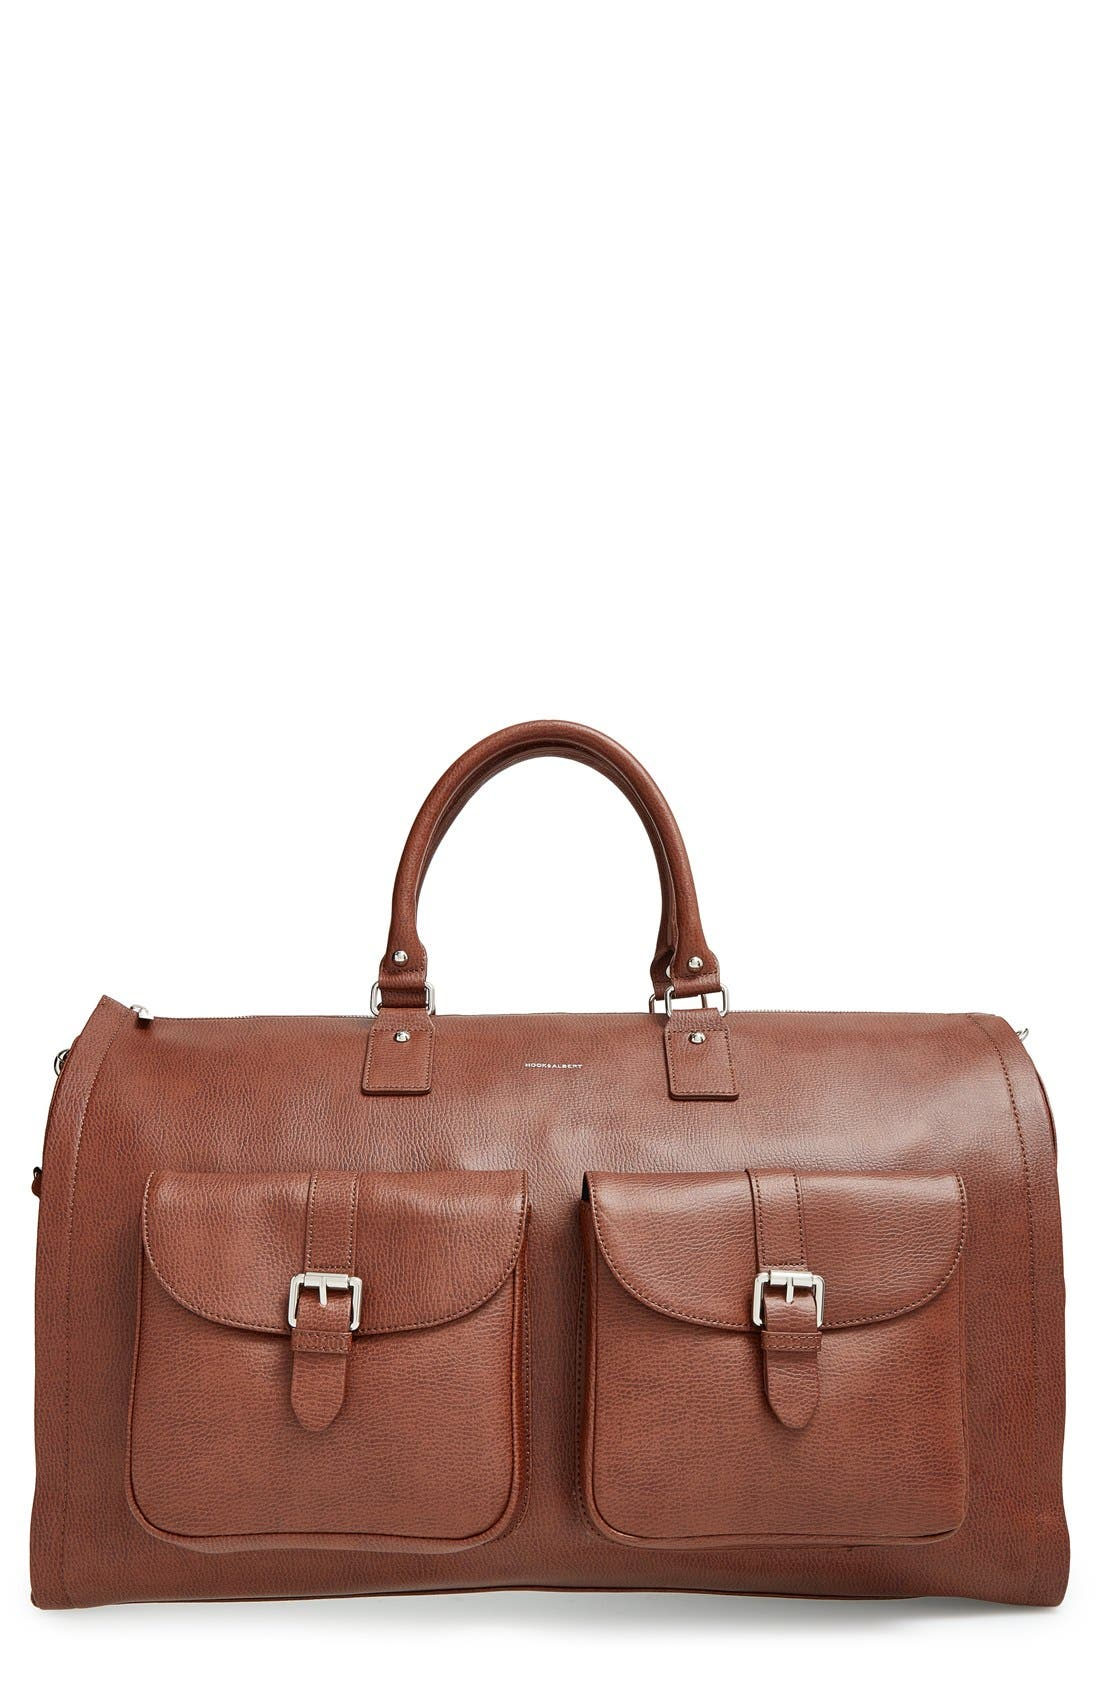 hook + ALBERT Leather Garment/Duffel Bag (22 inch)